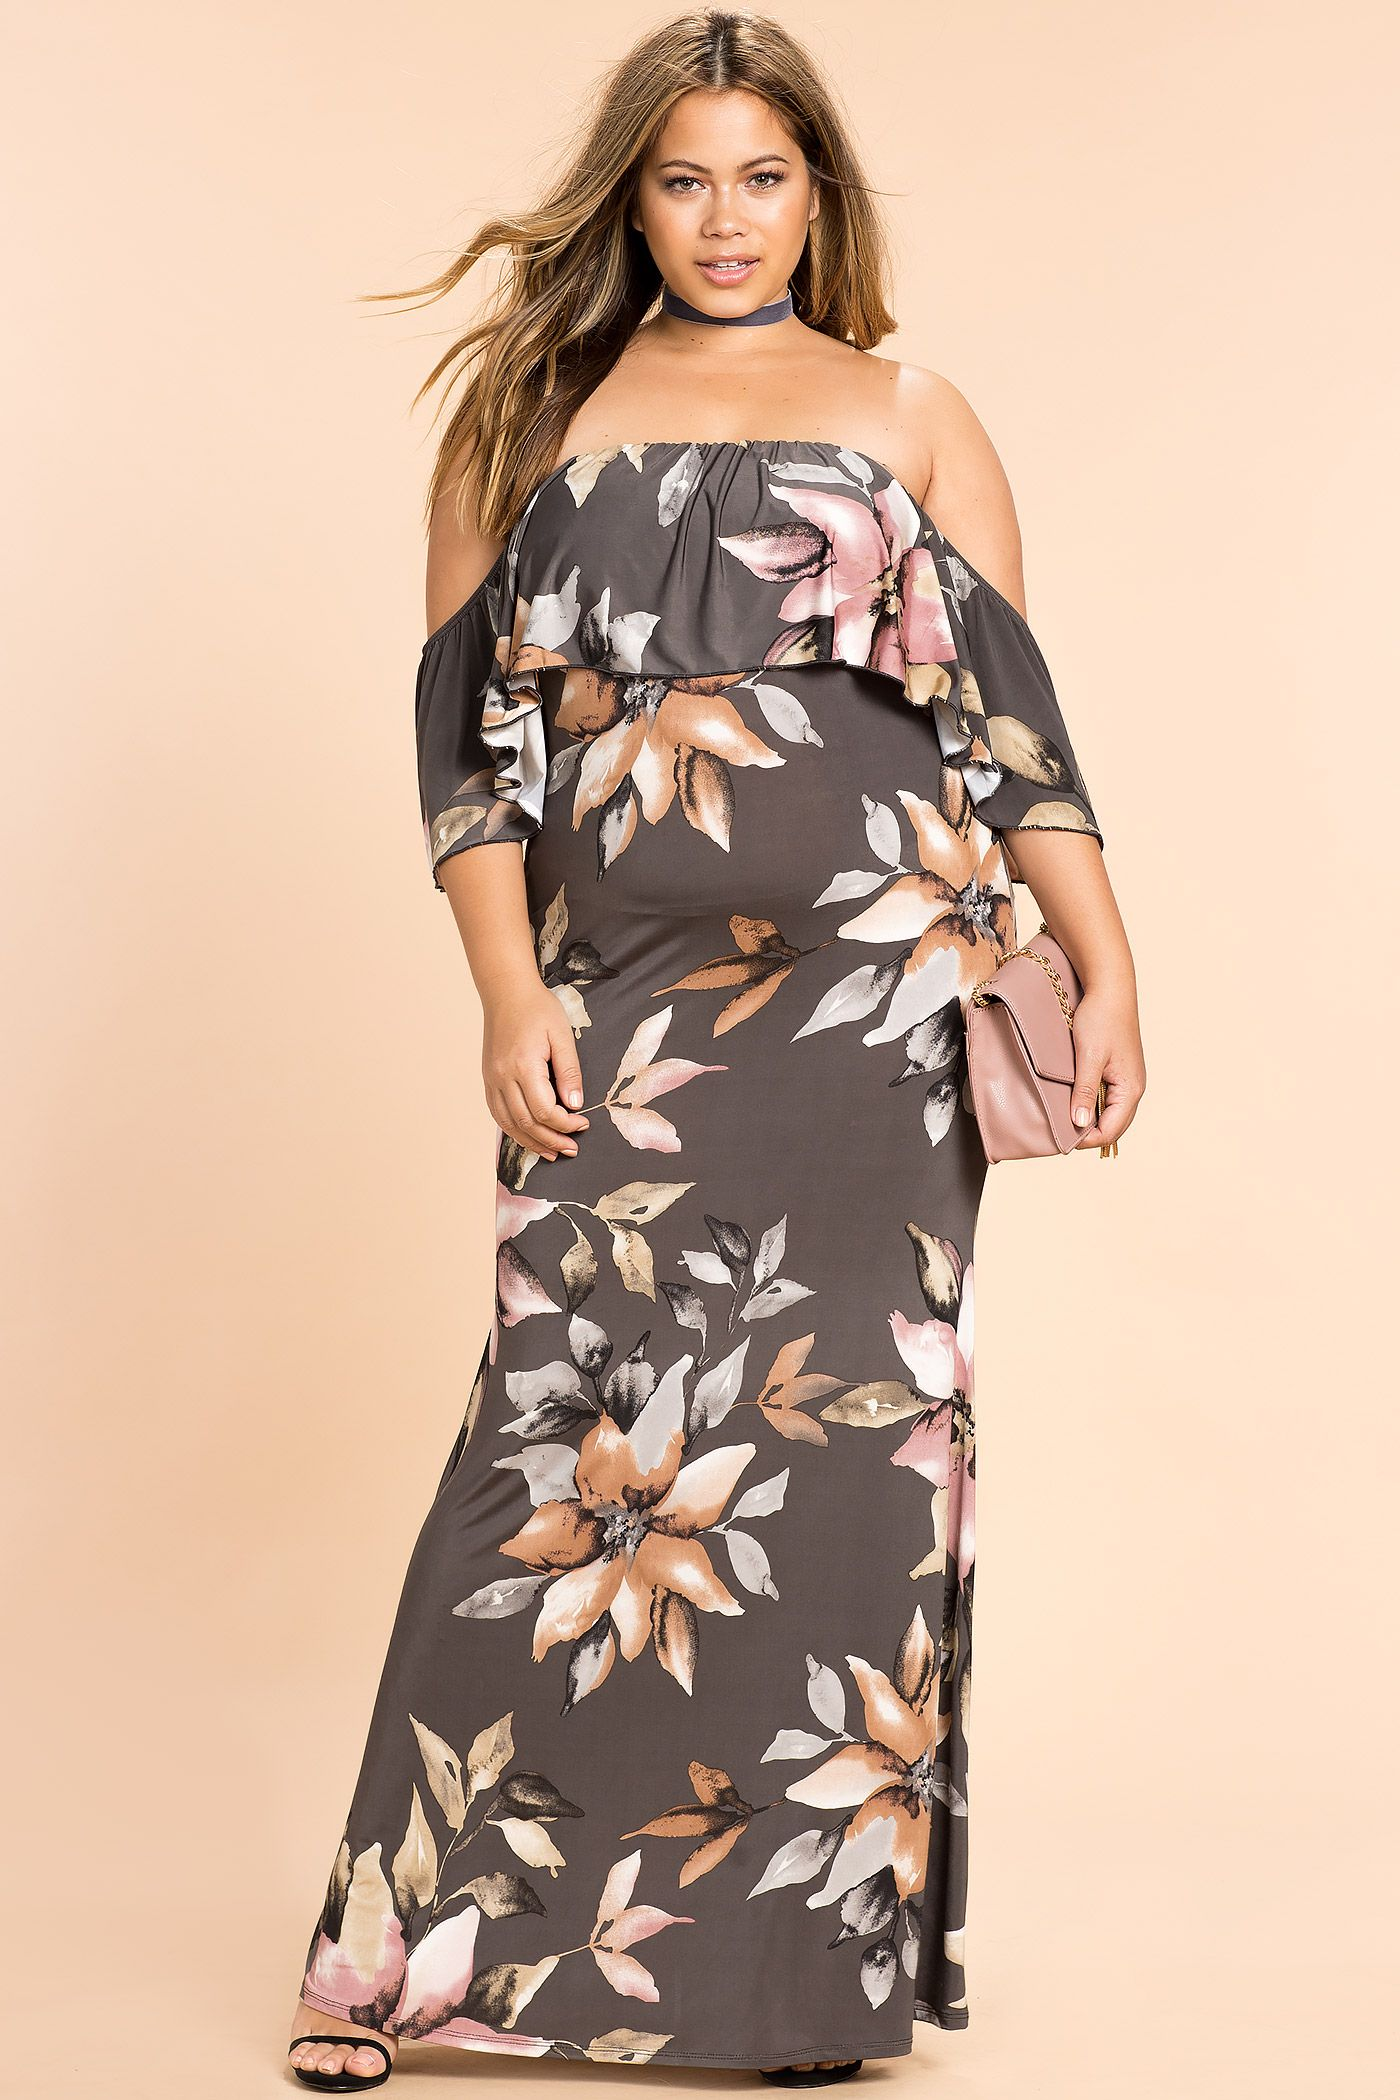 ad178a6eae08 Women's Plus Size Maxi Dresses | Floral Evening Off Shoulder Maxi Dress | A 'GACI